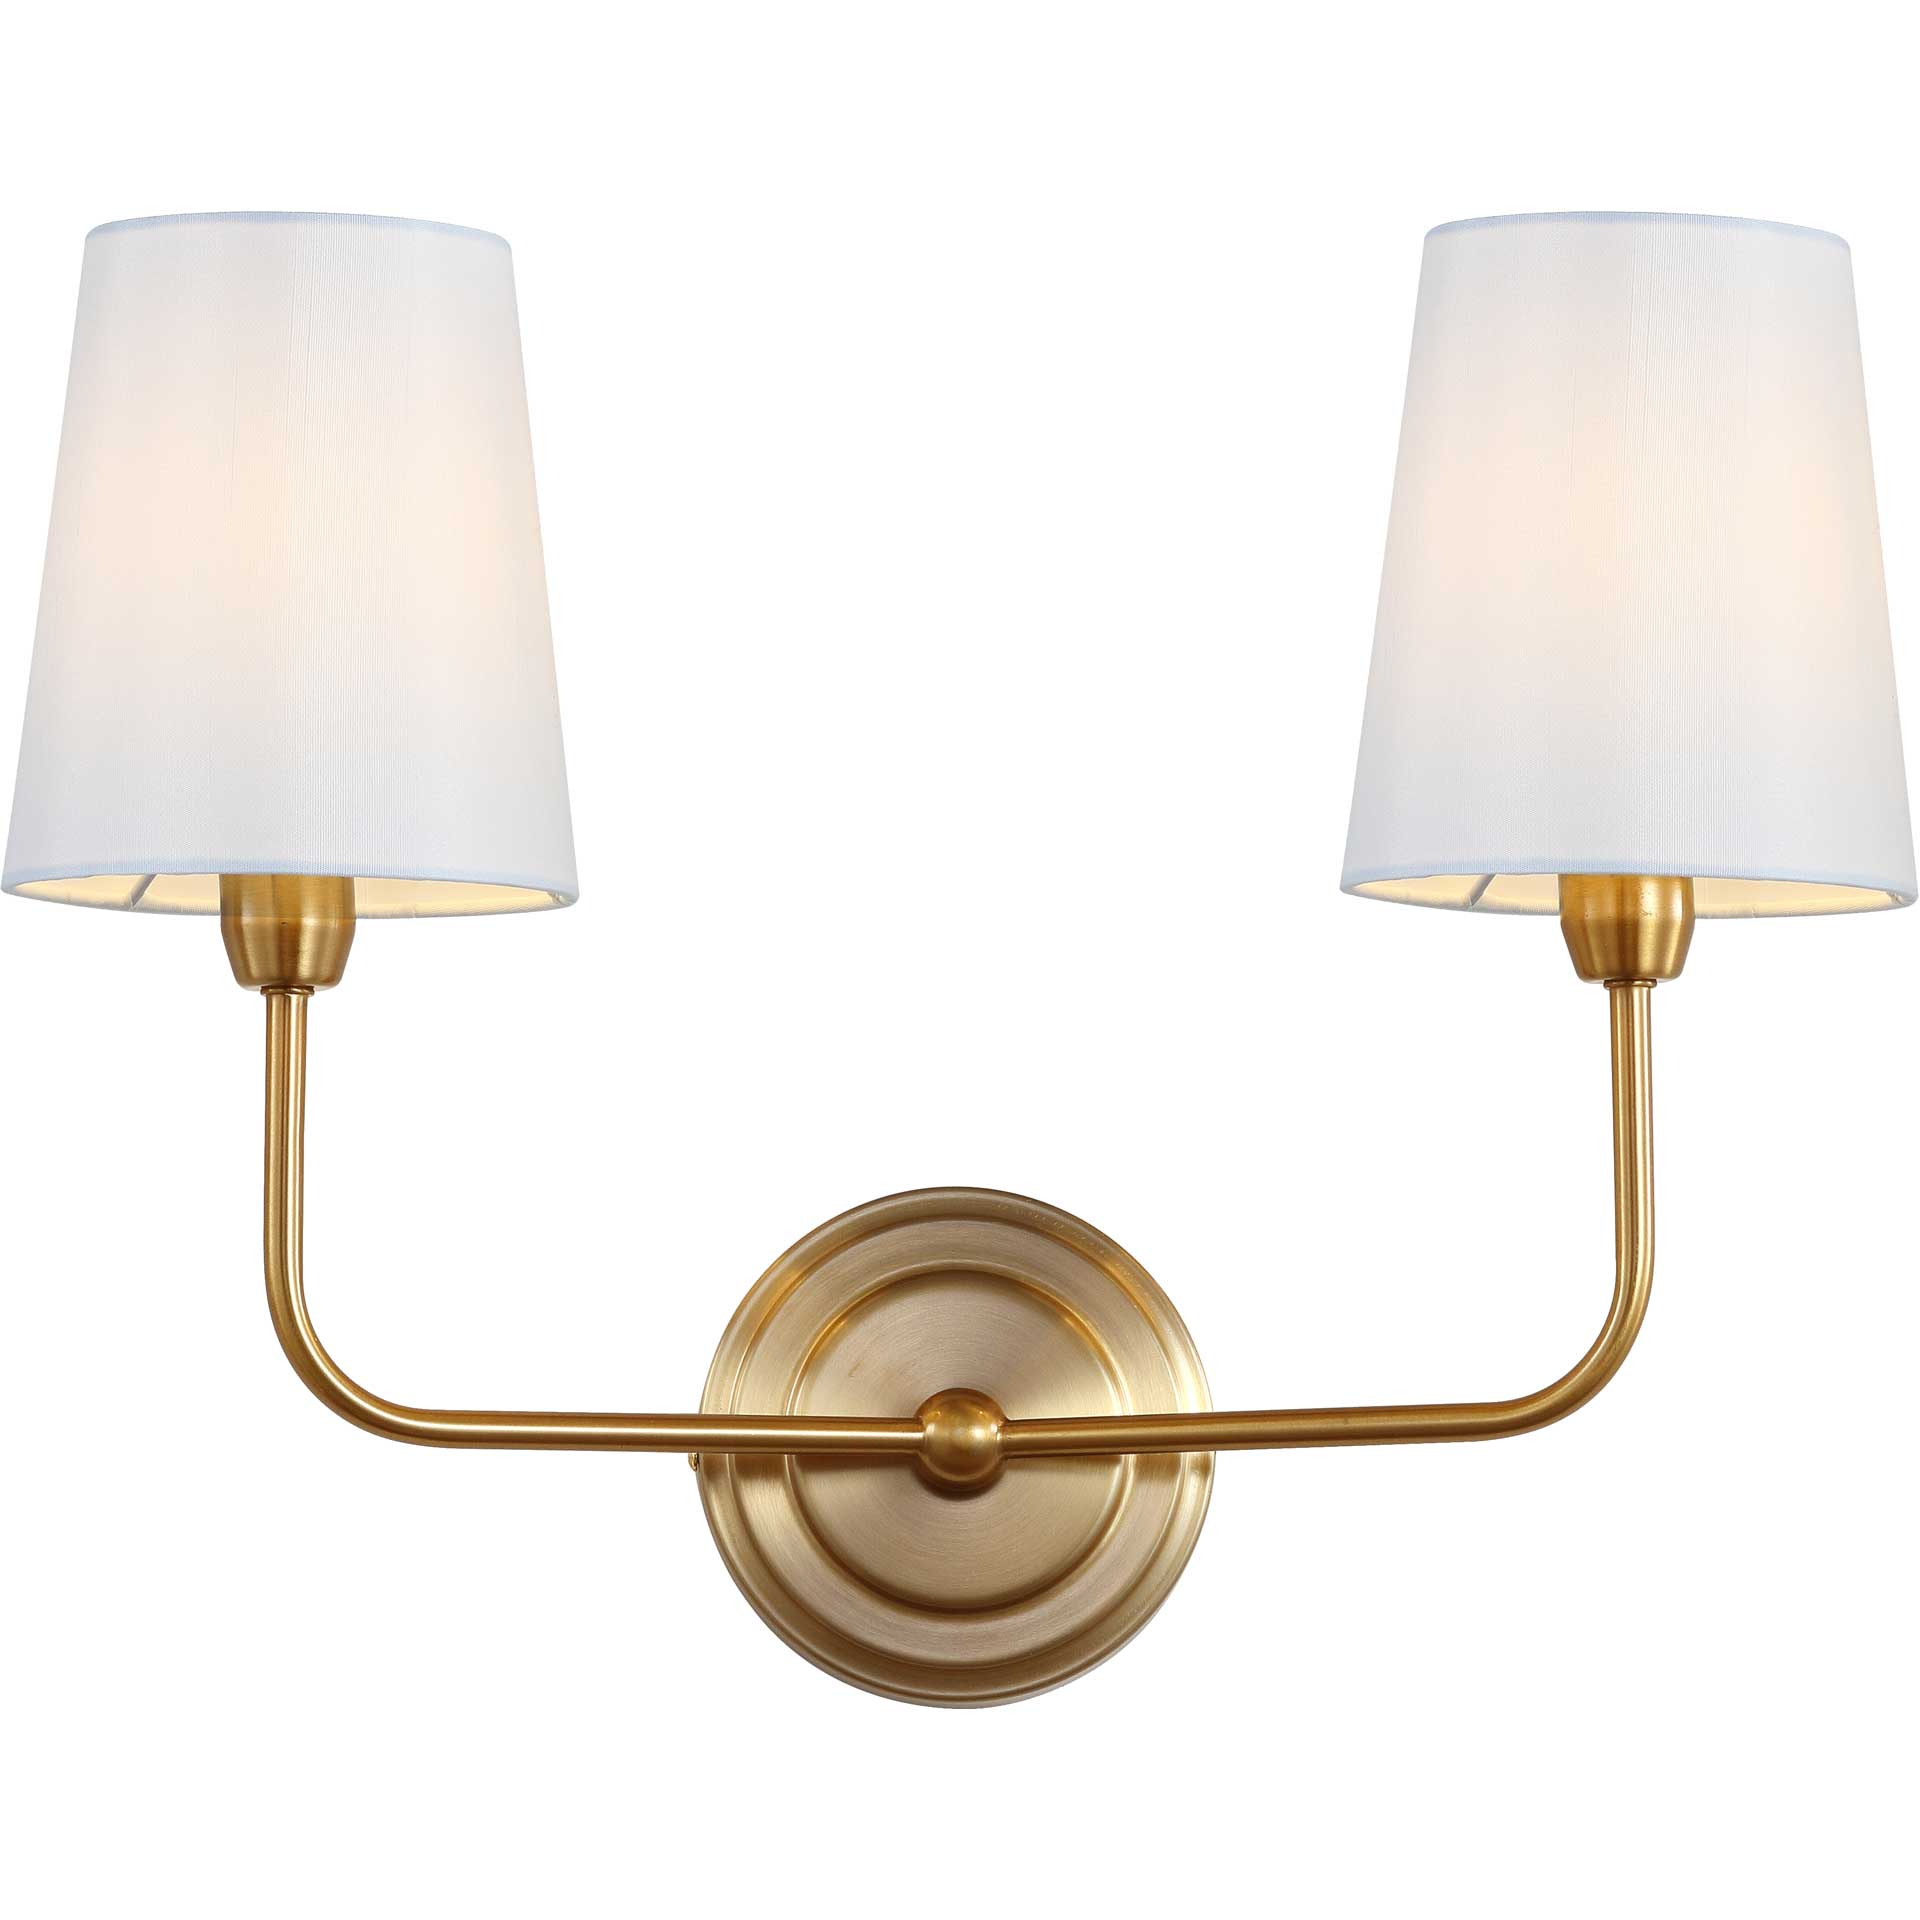 Ezequiel Two Light Wall Sconce Brass Gold